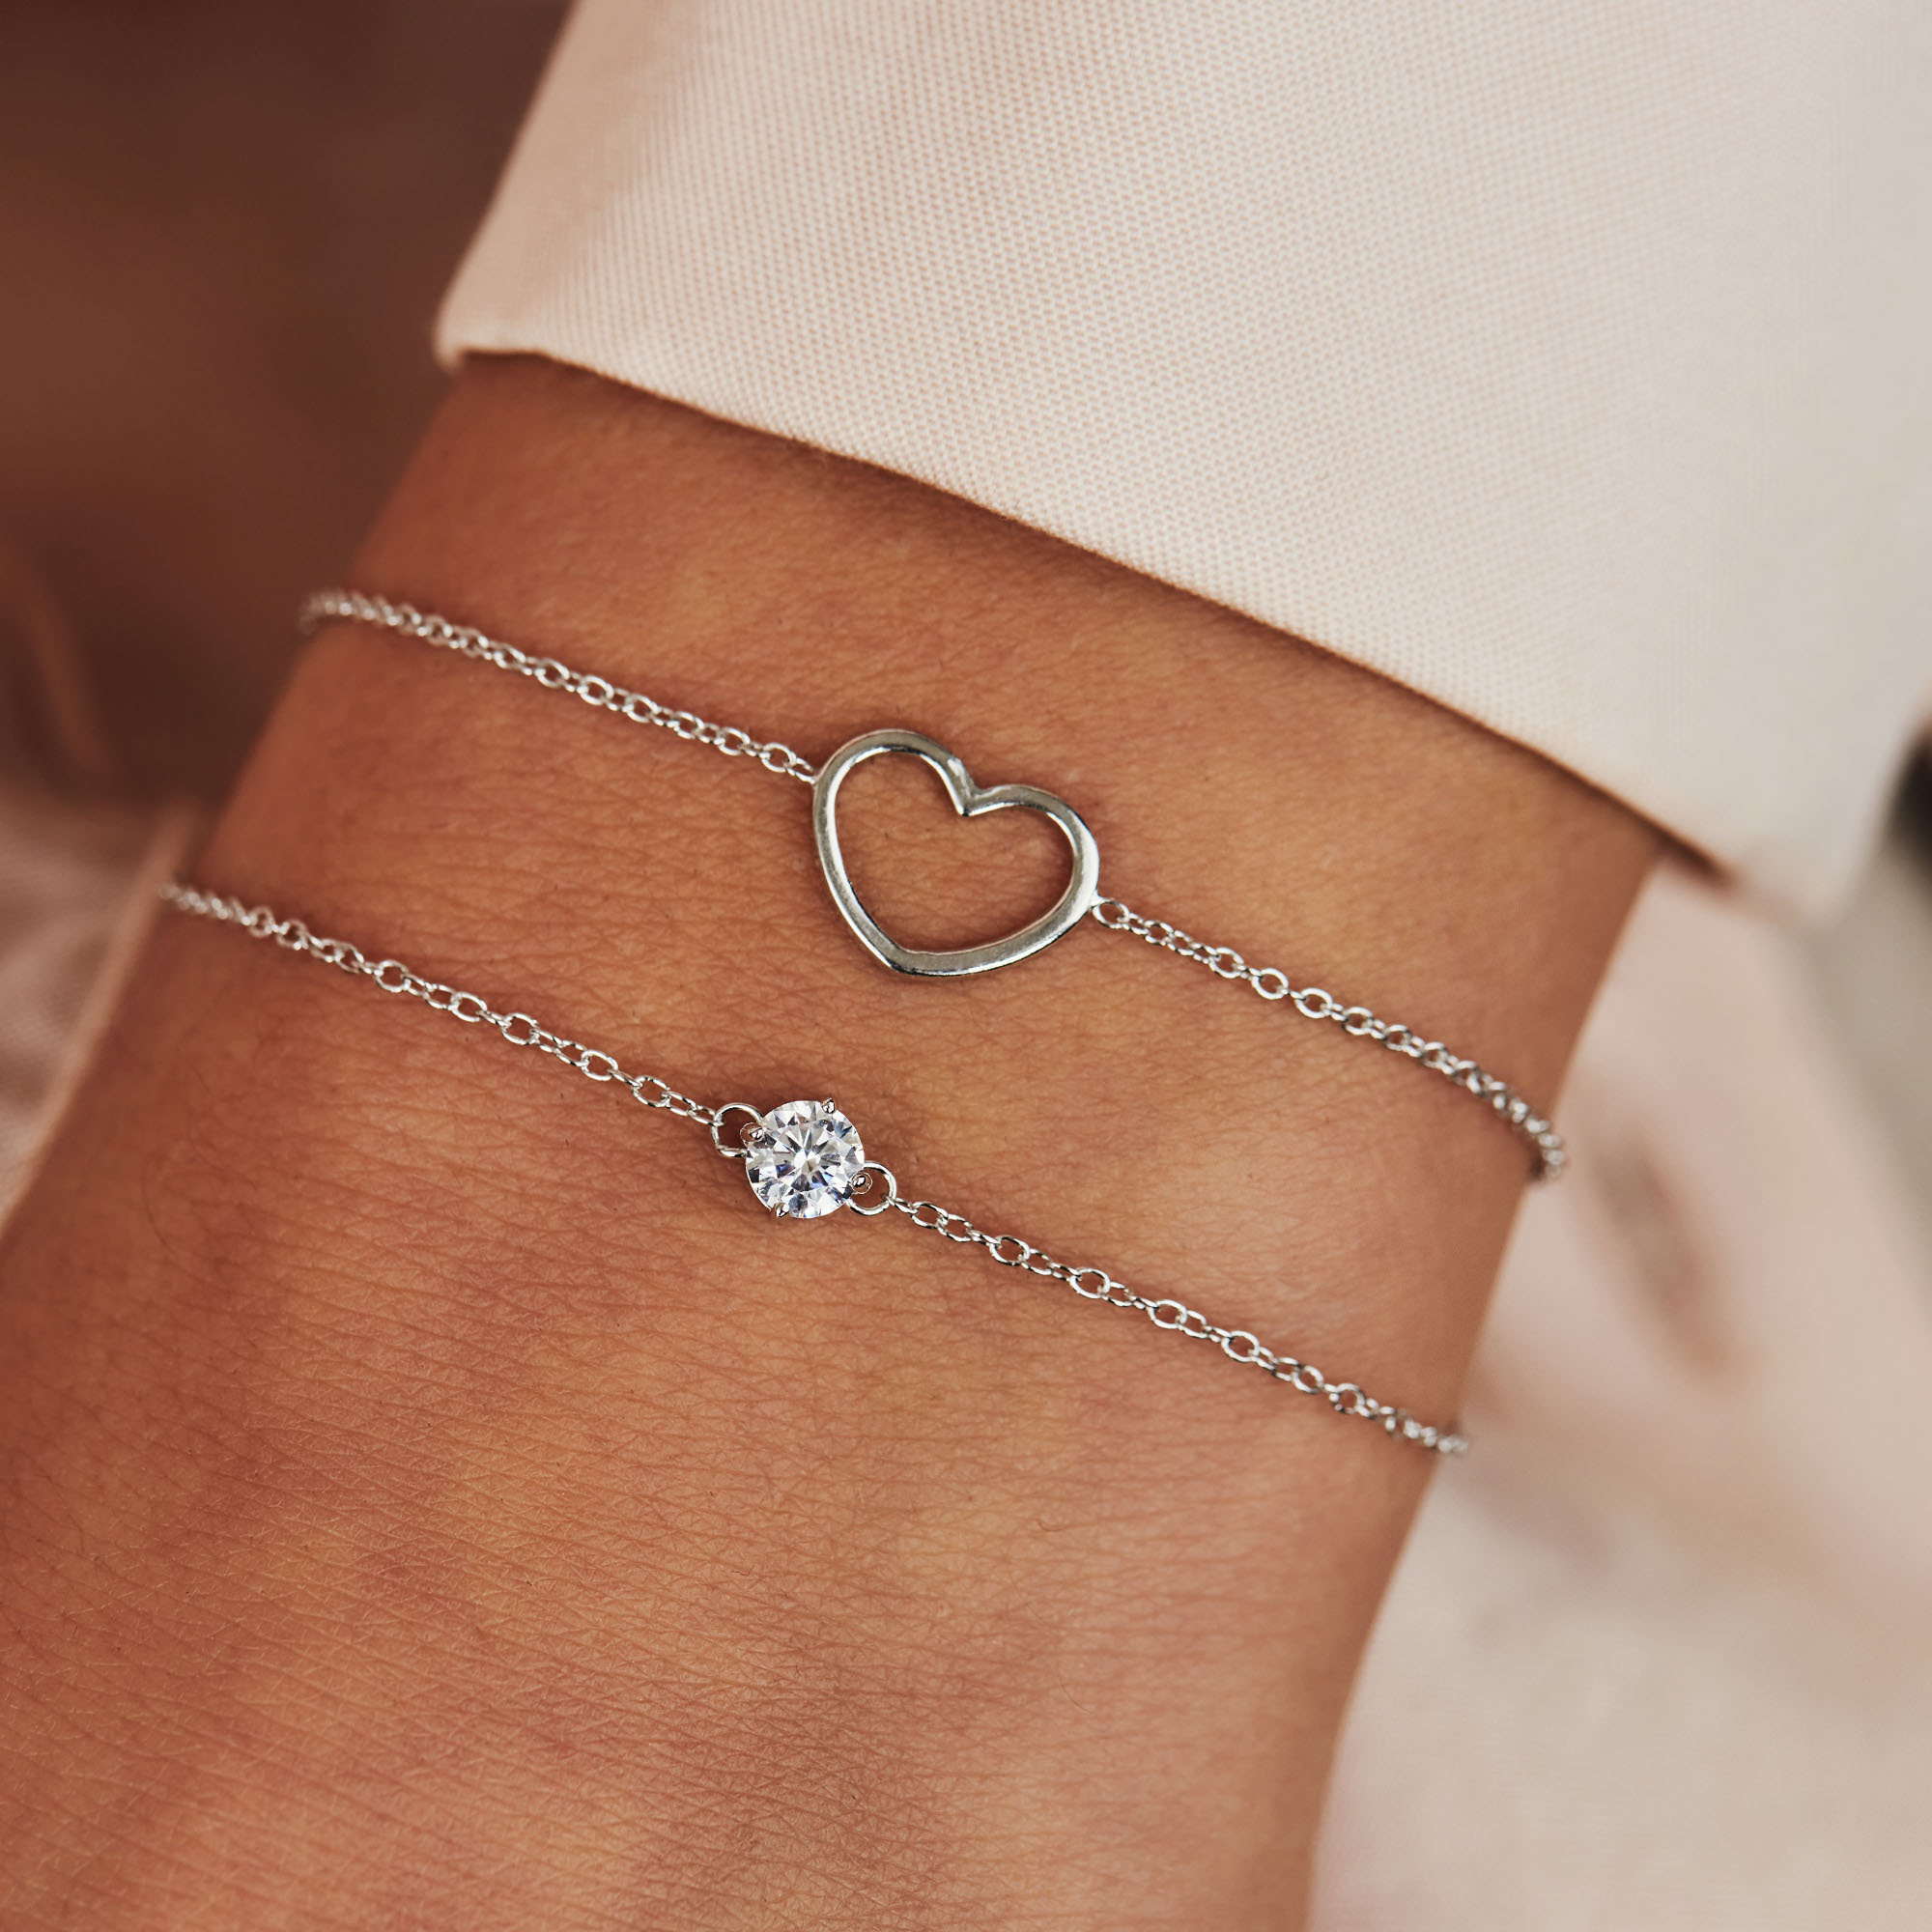 Selected Jewels Aimée 925 sterling zilveren armband met hartje